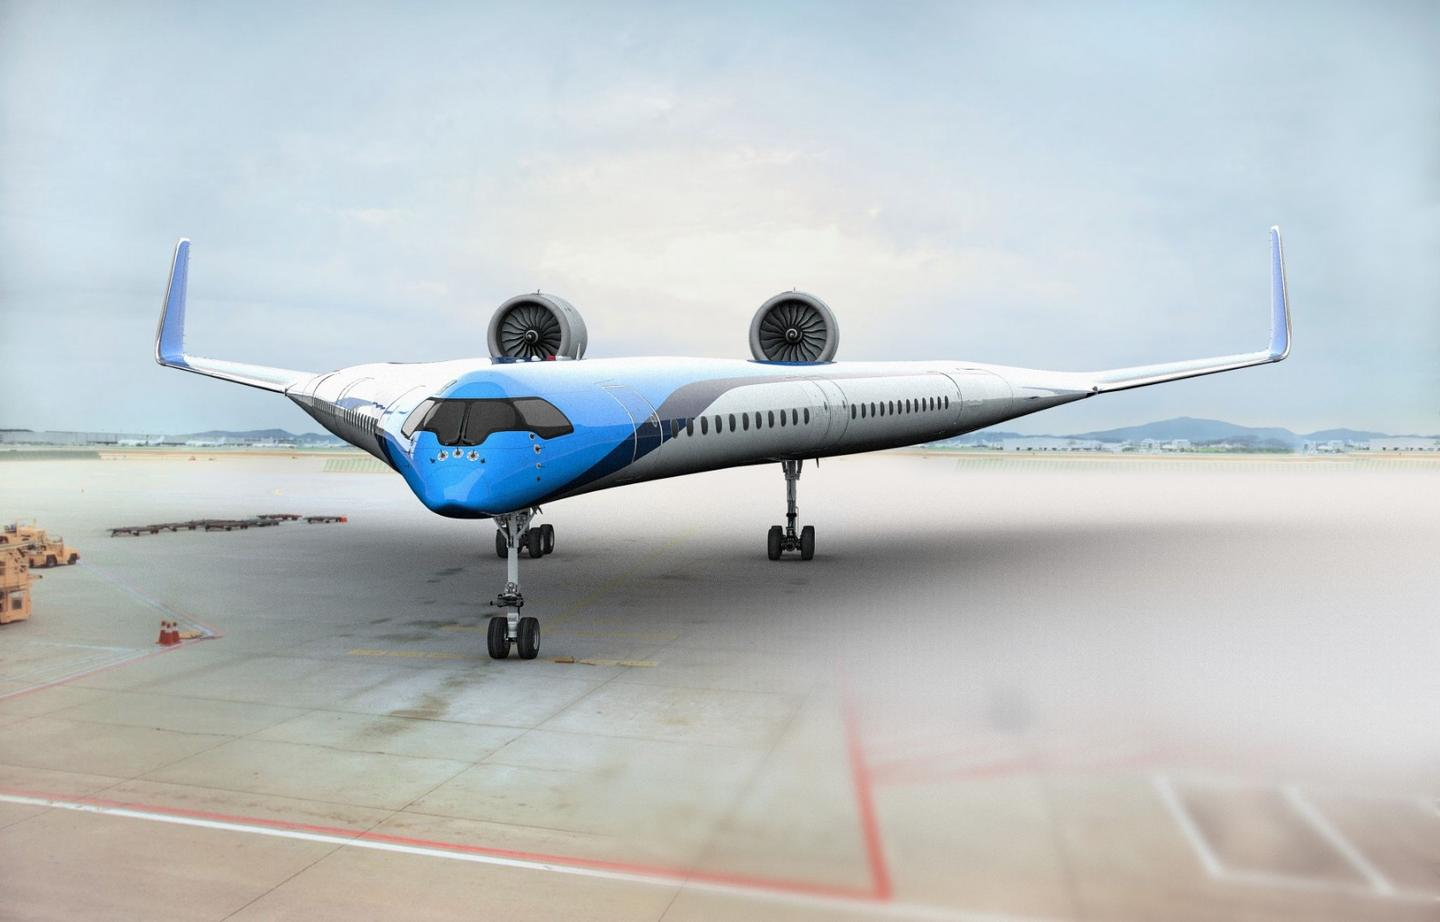 The Flying-V concept is 55 meters long and 17 meters high, with a wingspan of 65 meters